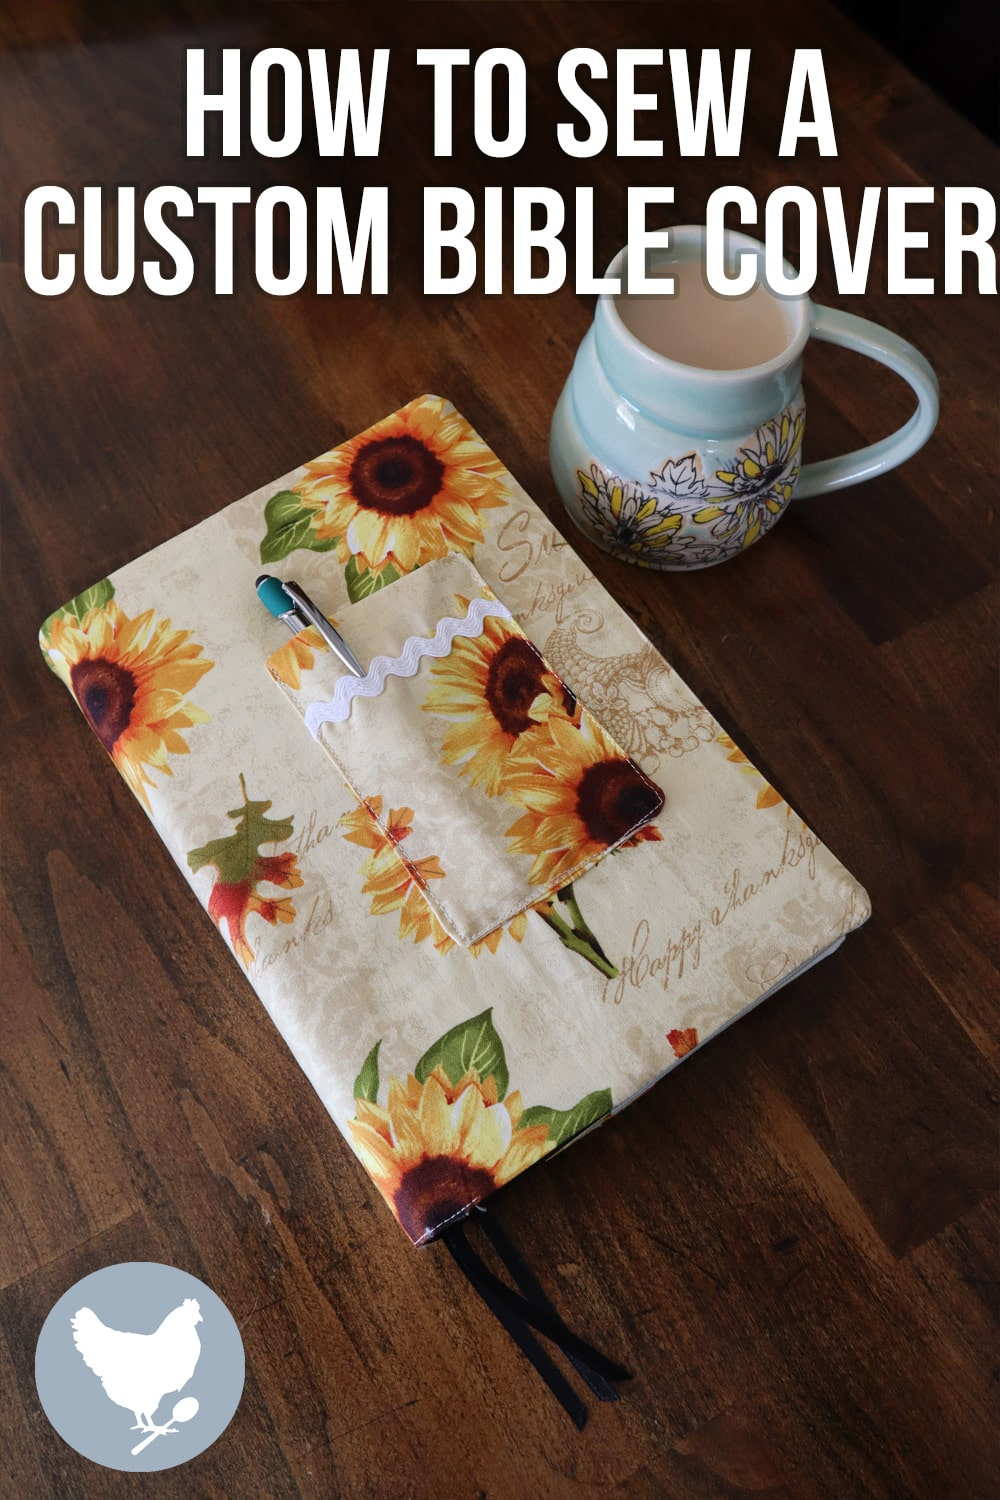 You can make a cloth bible cover to perfectly fit your own bible. This article includes a how-to video, taking you through the entire process.